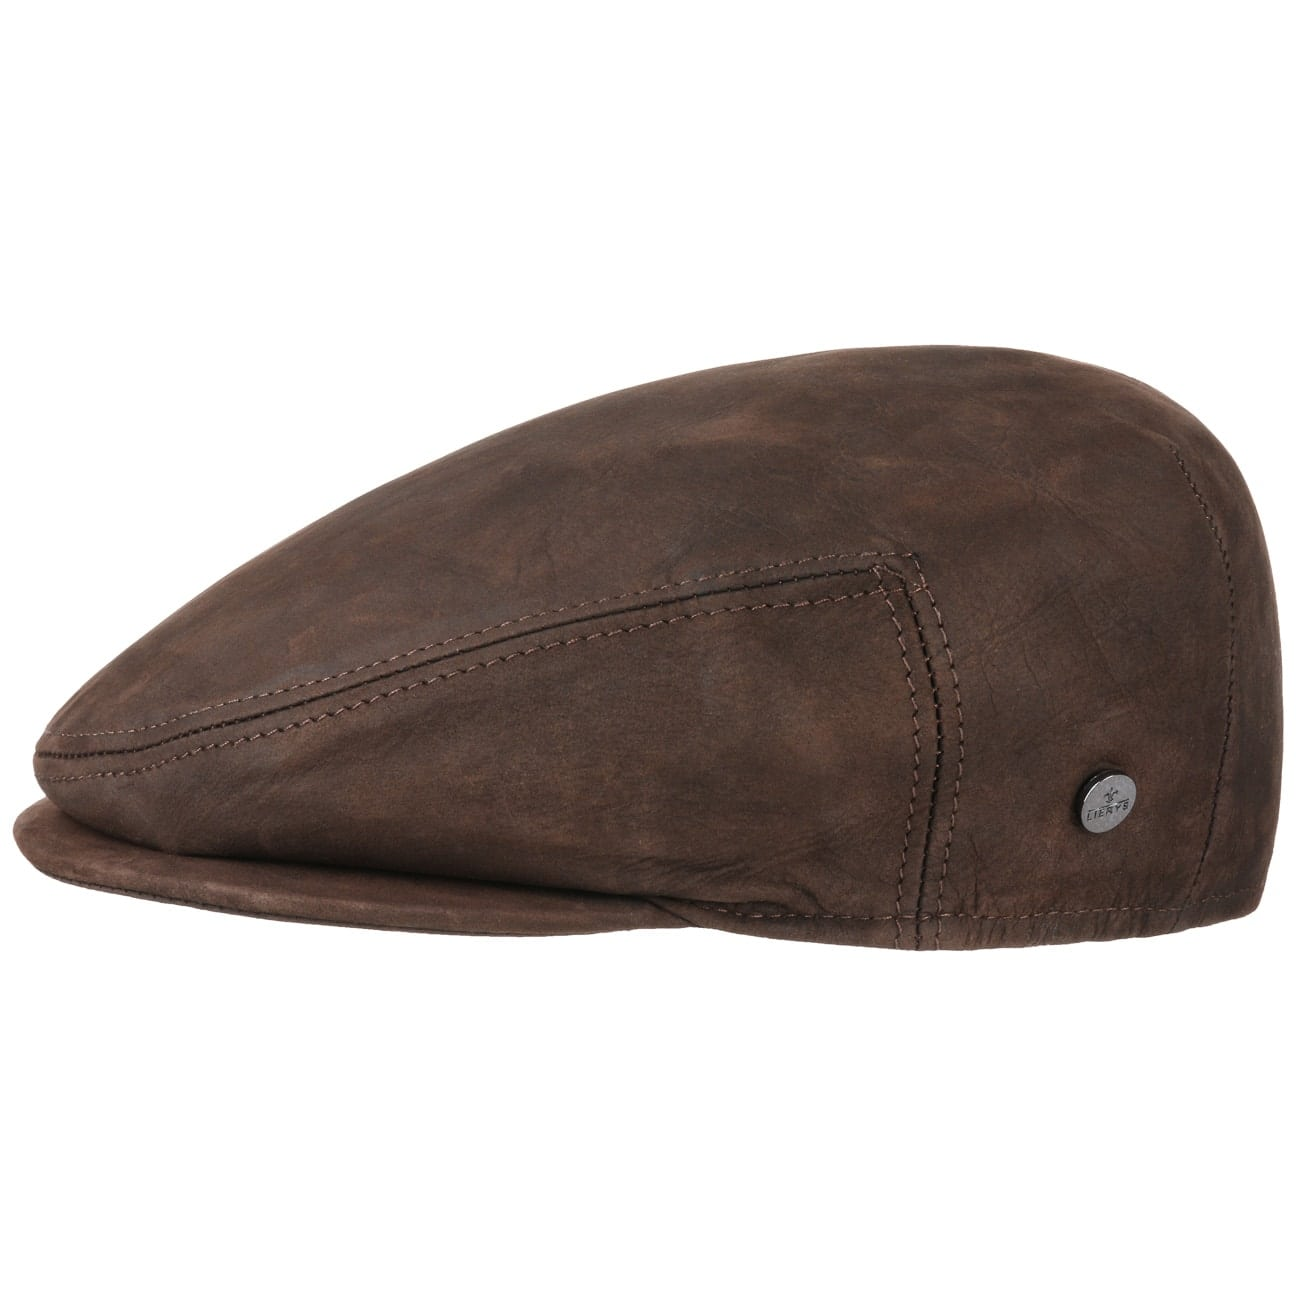 0155a9cd35c2c ... Leather Flat Cap by Lierys - brown 1 ...